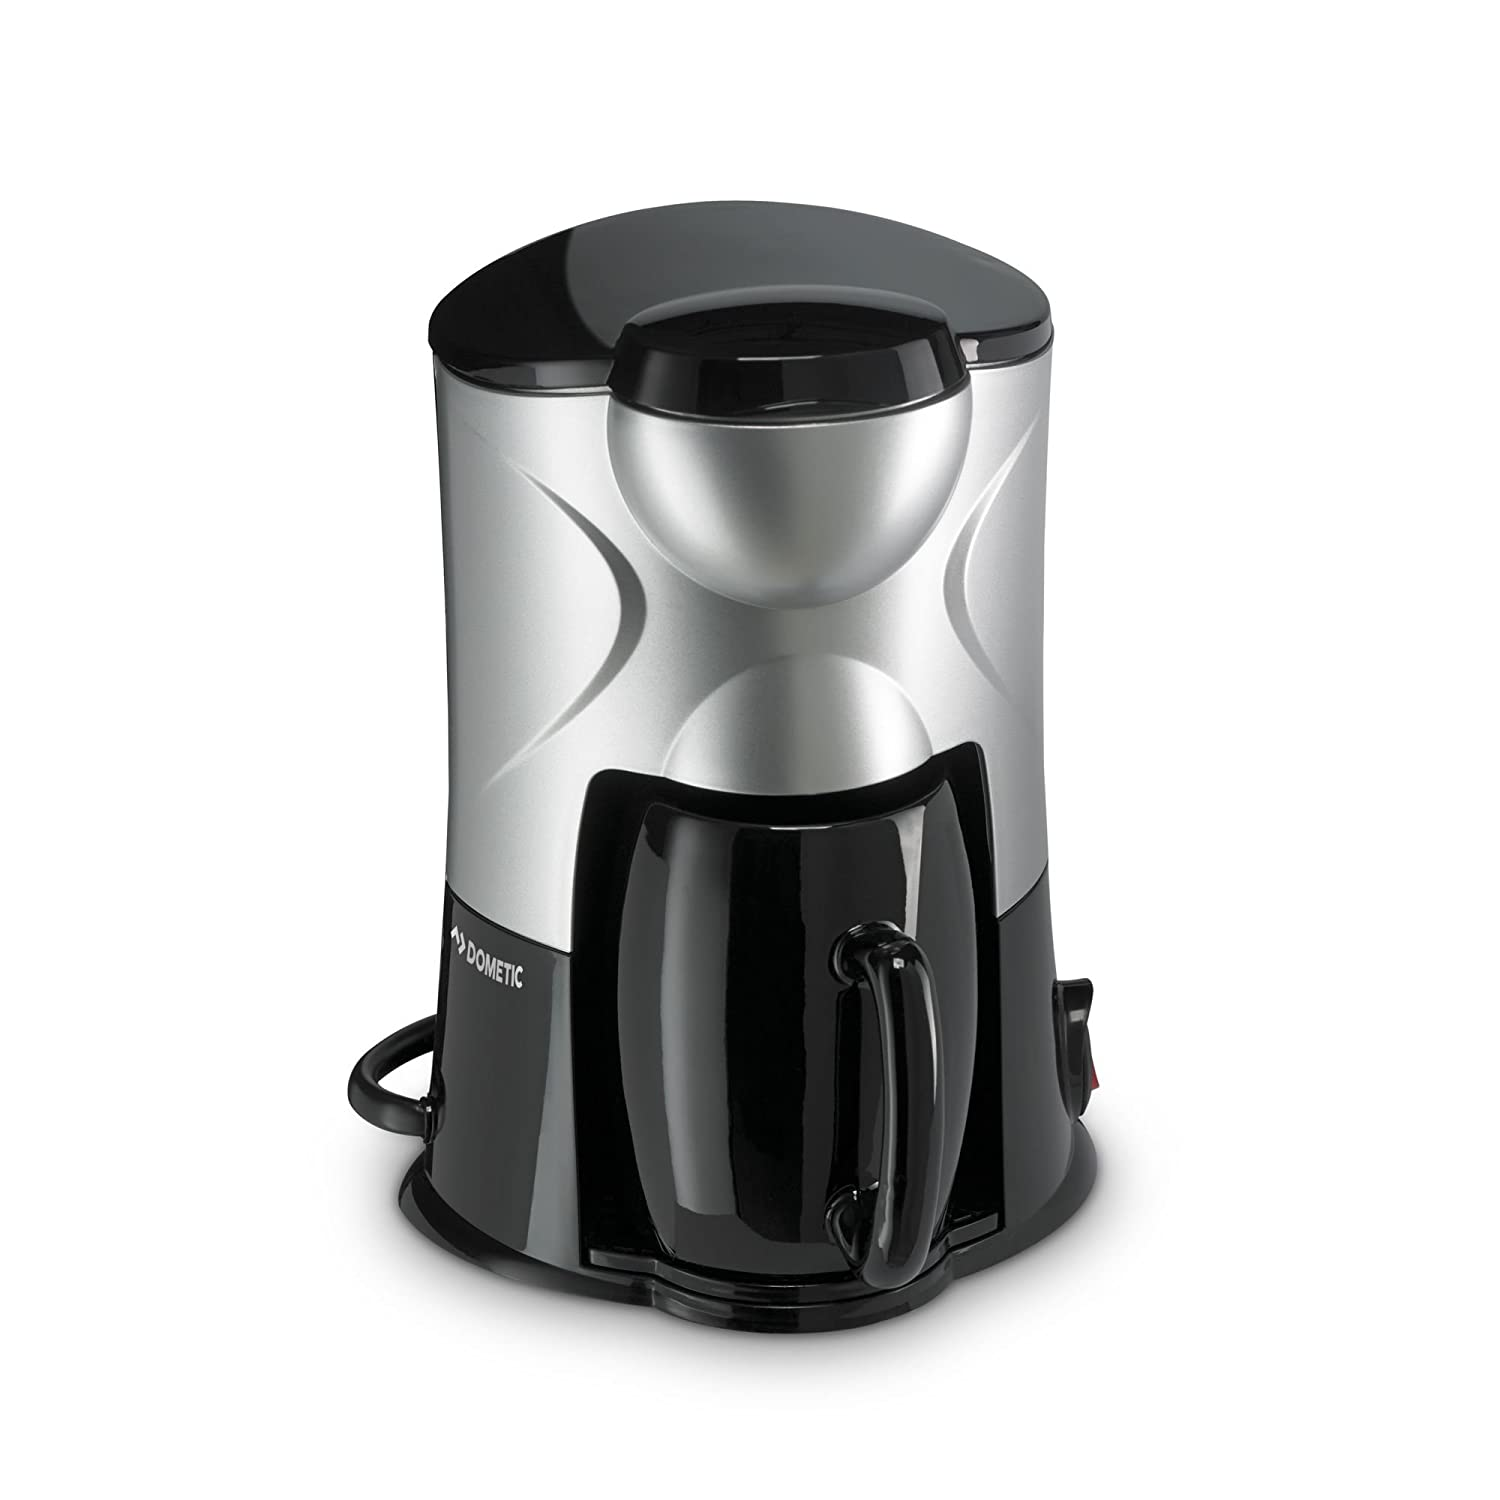 DOMETIC PerfectCoffee MC 01, Cafetiè re é lectrique 1 tasse, 24V, p110xh190xl135mm Cafetière électrique 1 tasse Dometic Waeco gmbh 9103533010